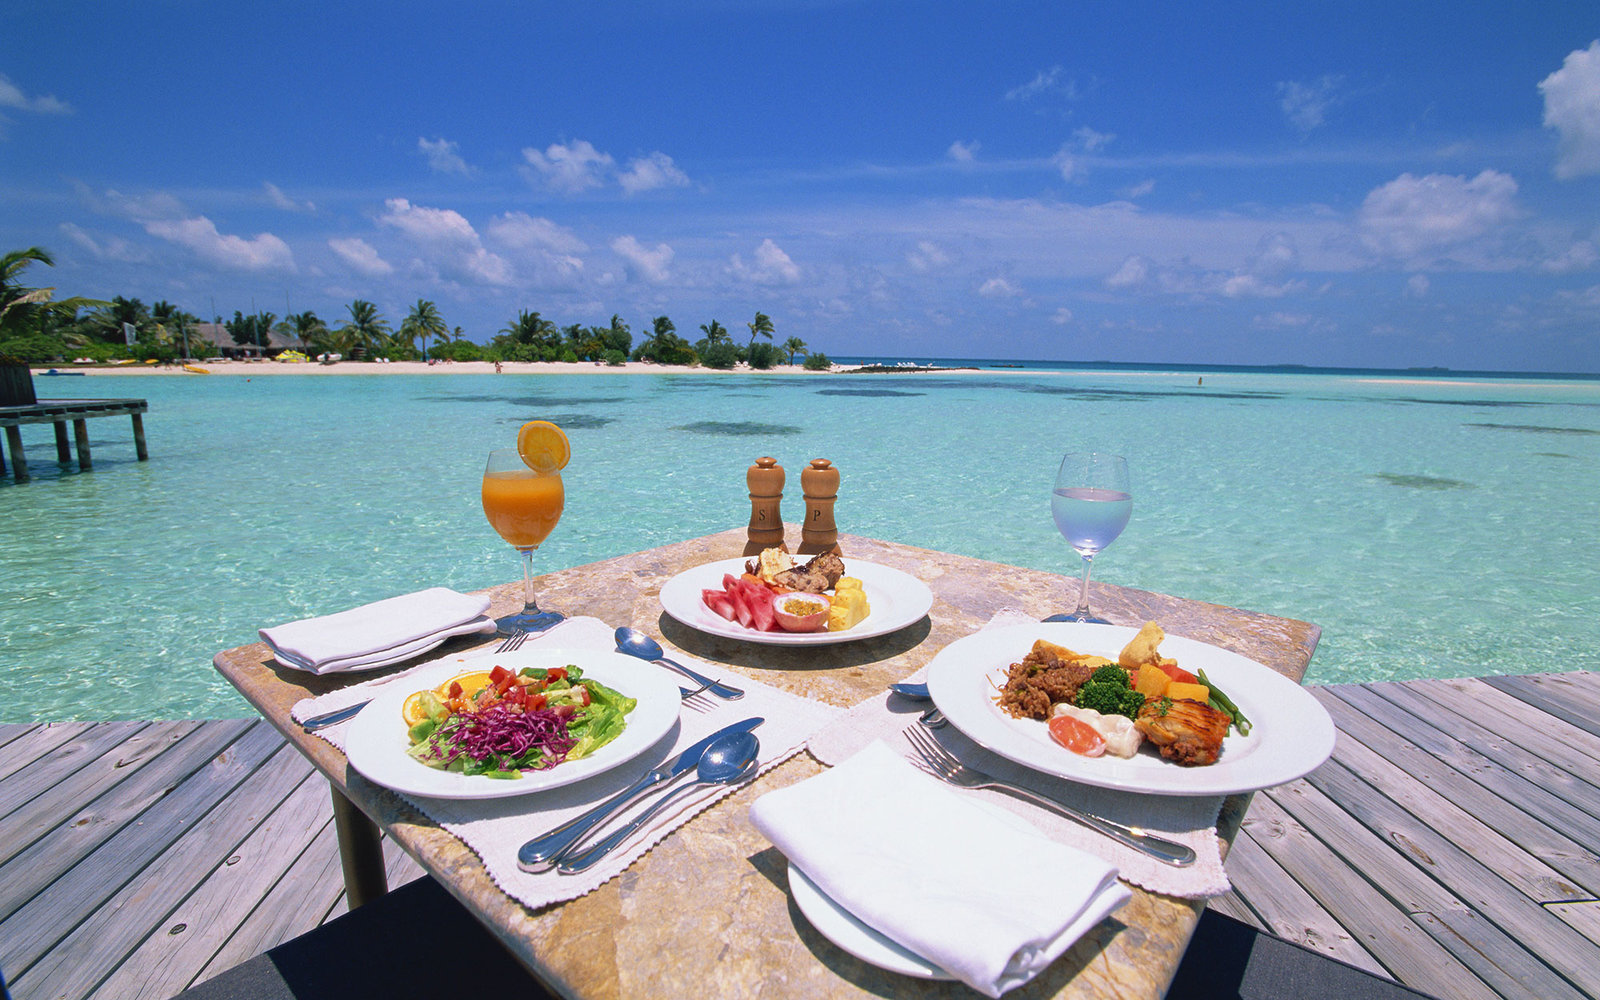 Luxury seaside meal at Maldives resort. / Holidays can be a chance to enjoy exotic dishes -- better than overindulging familiar not-so-healthy fare.